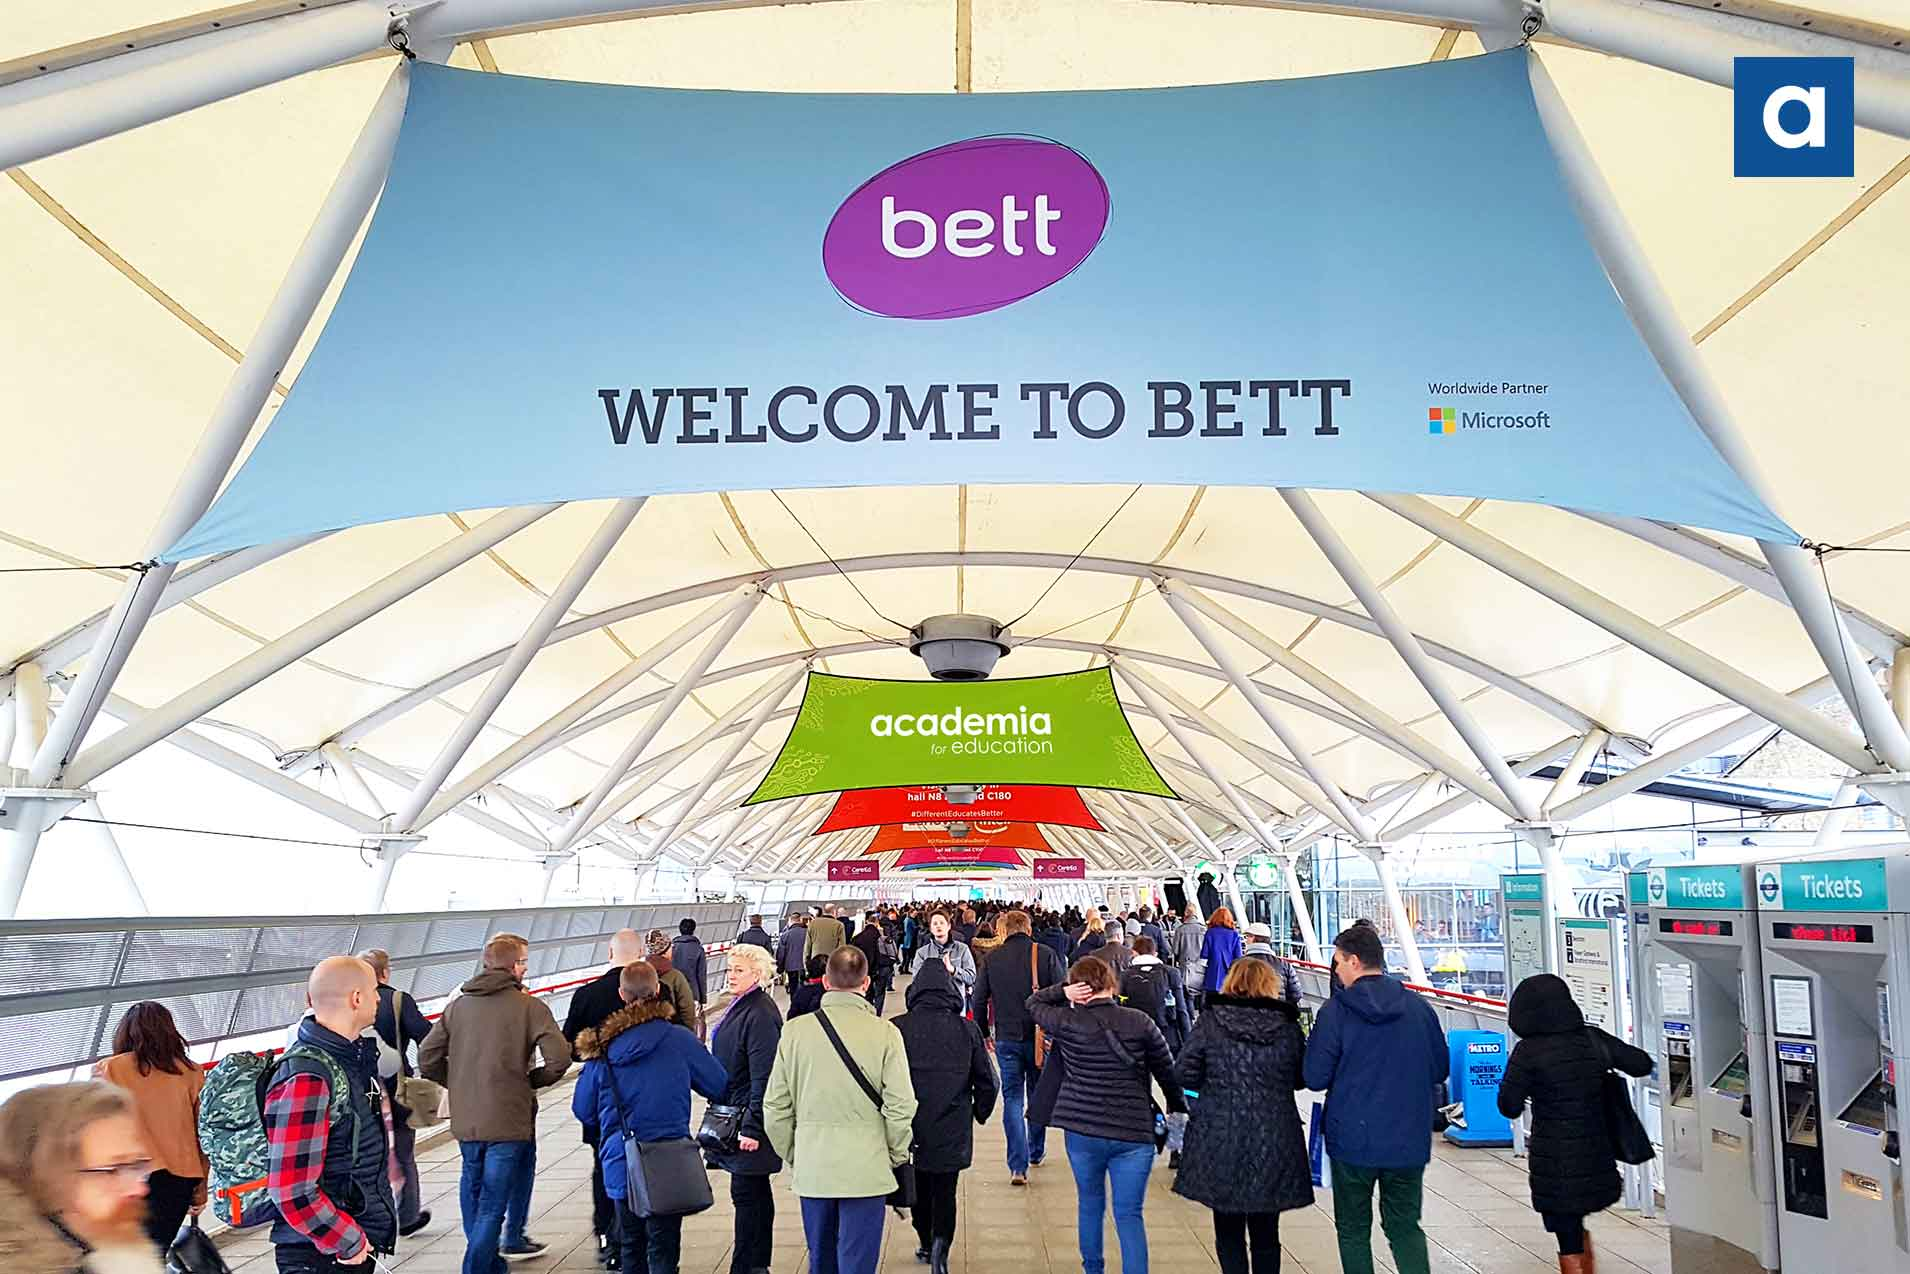 Academia at BETT 2019 – what you may have missed?